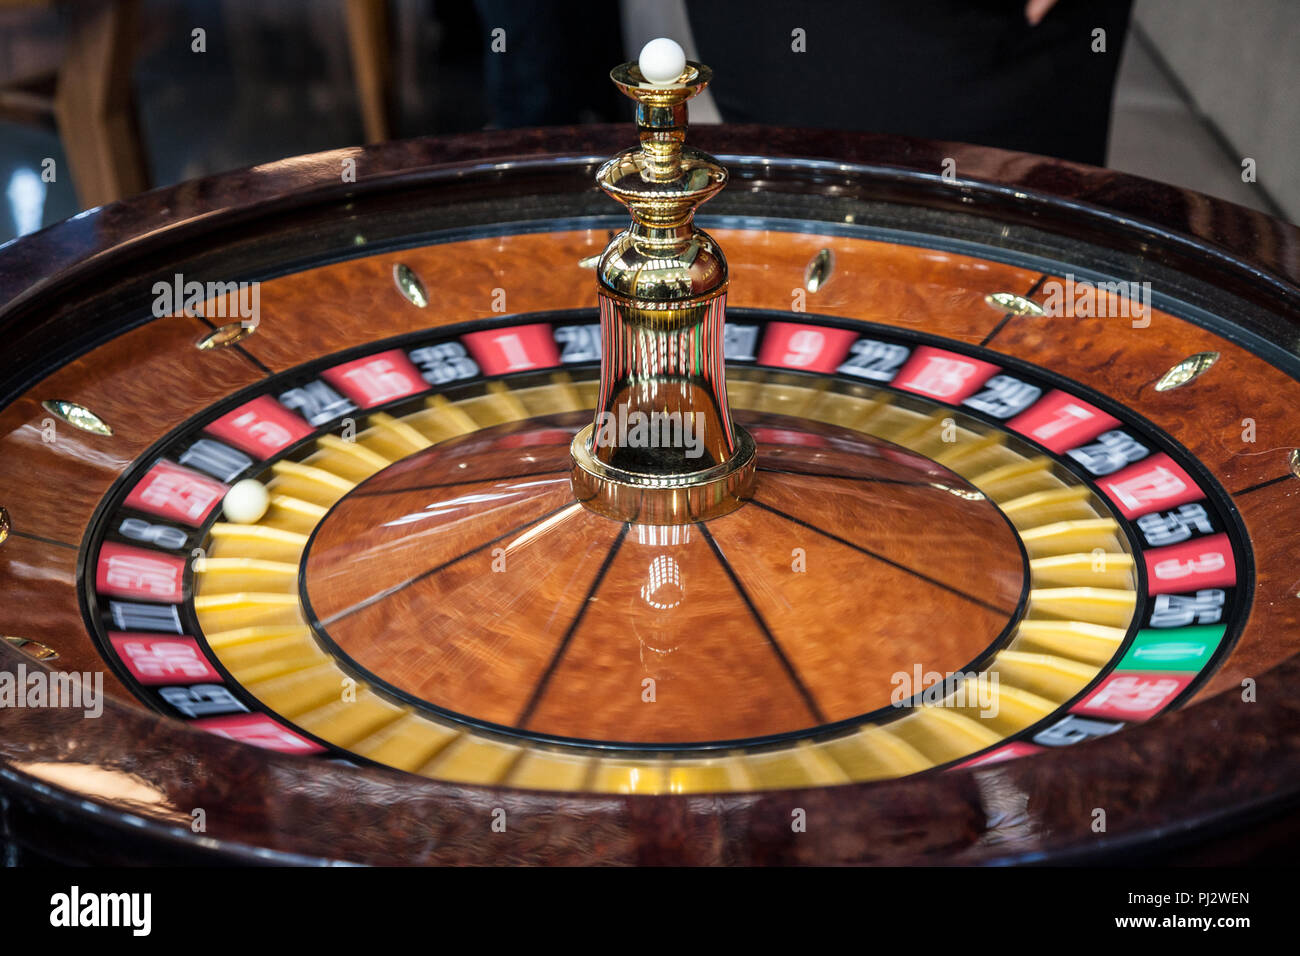 Roulette spinning, in movement, during a demo game. Roulette is a gambling and betting casino game  Picture of a roulette turning fast with a white ba - Stock Image